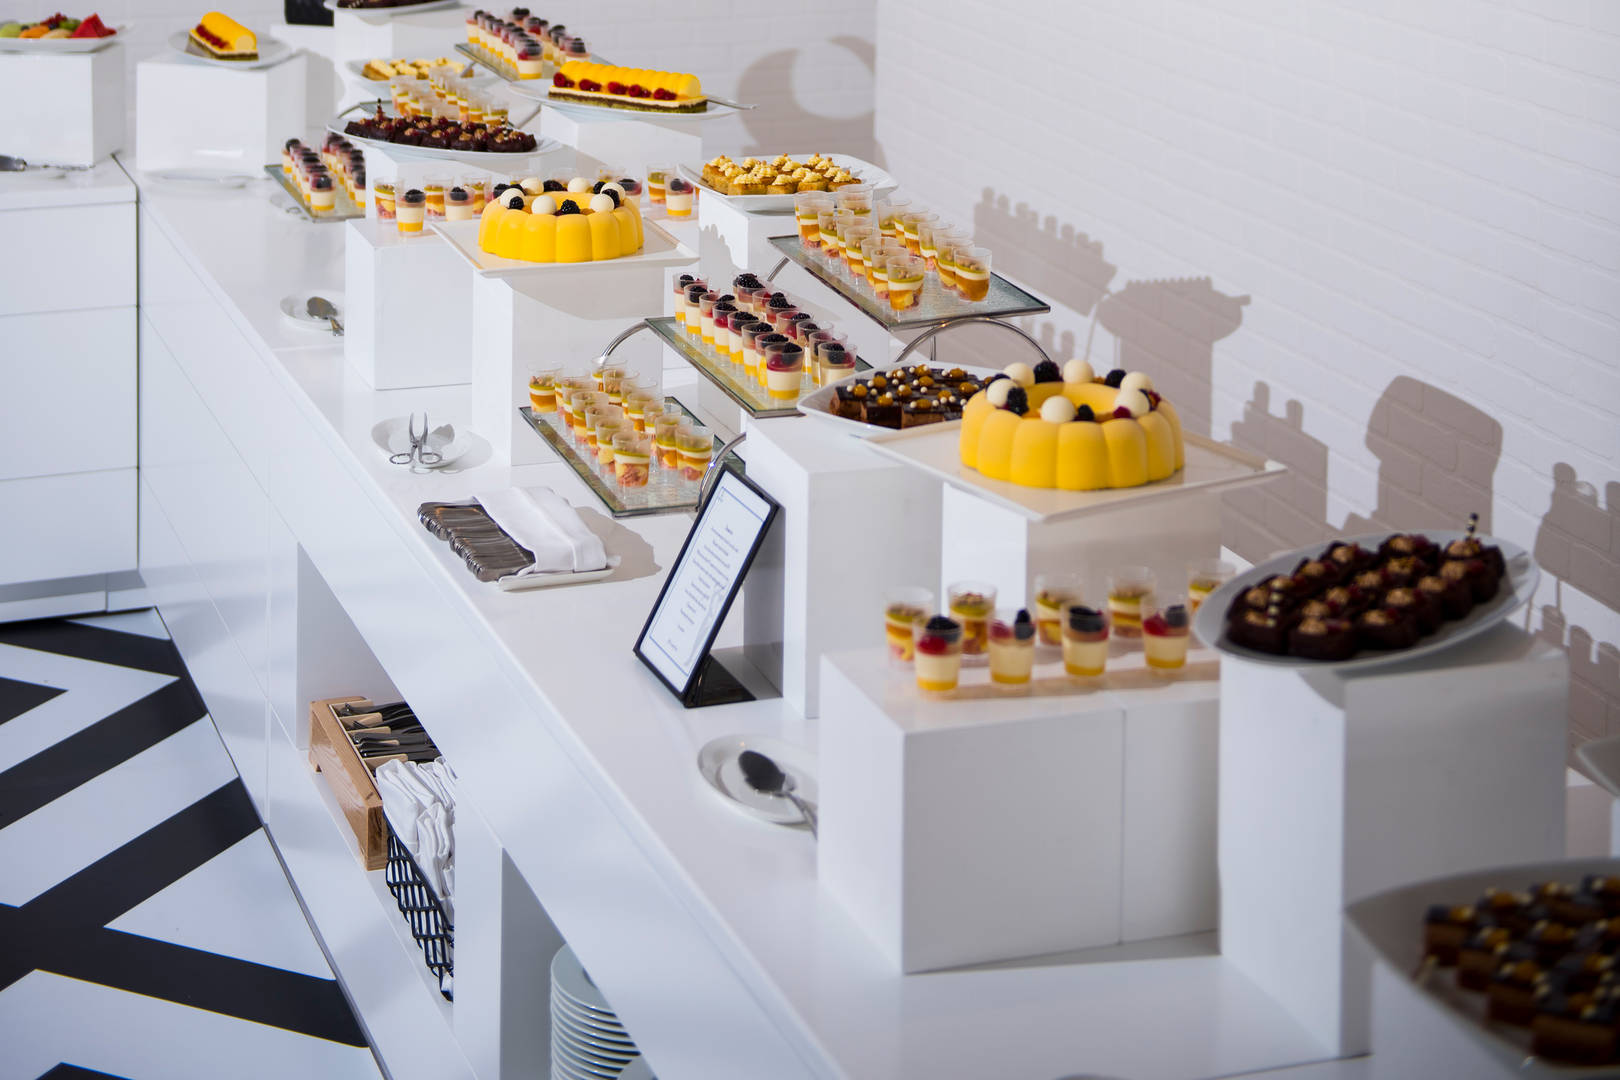 Jumeirah Hospitality Catering